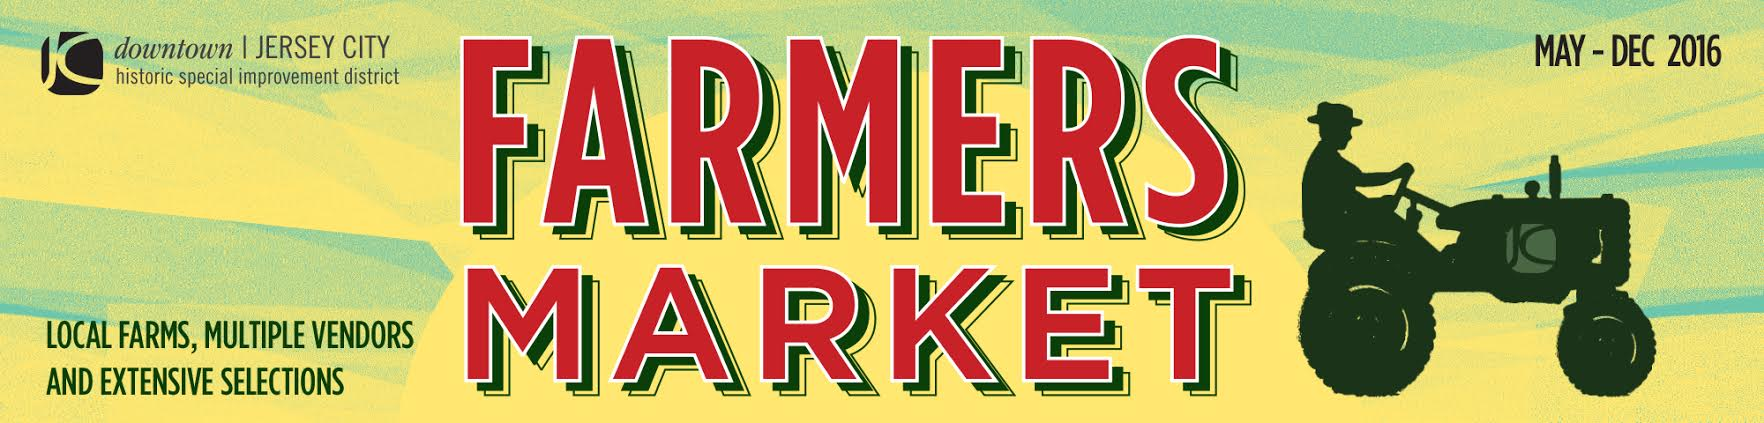 HISTORIC DOWNTOWN JERSEY CITY FARMERS' MARKET